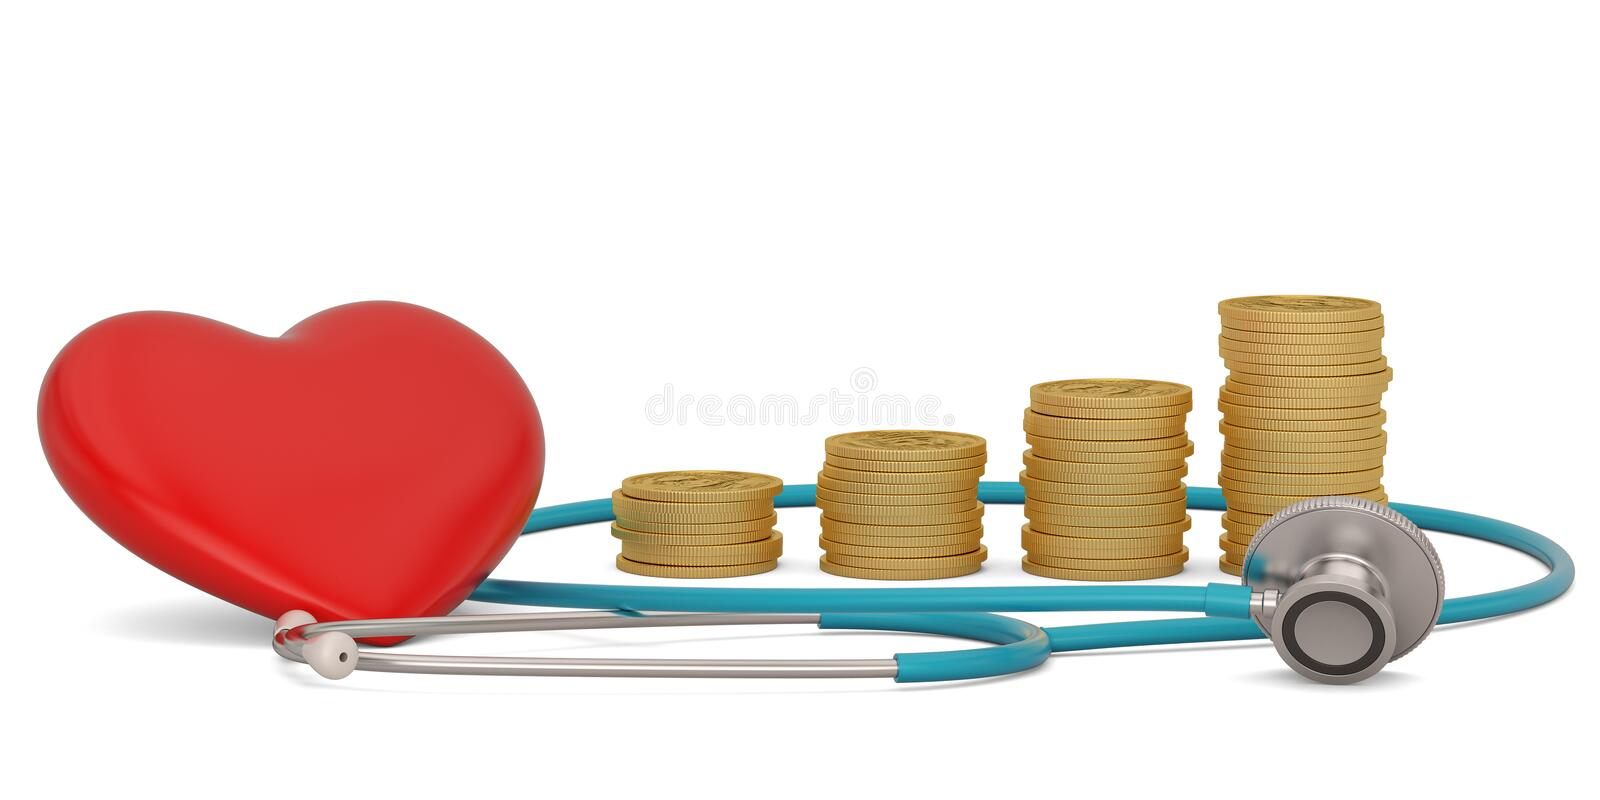 Gold coins  with stethoscope isolated on white background. 3D illustration. Gold coins with stethoscope isolated on white background. 3D illustration vector illustration